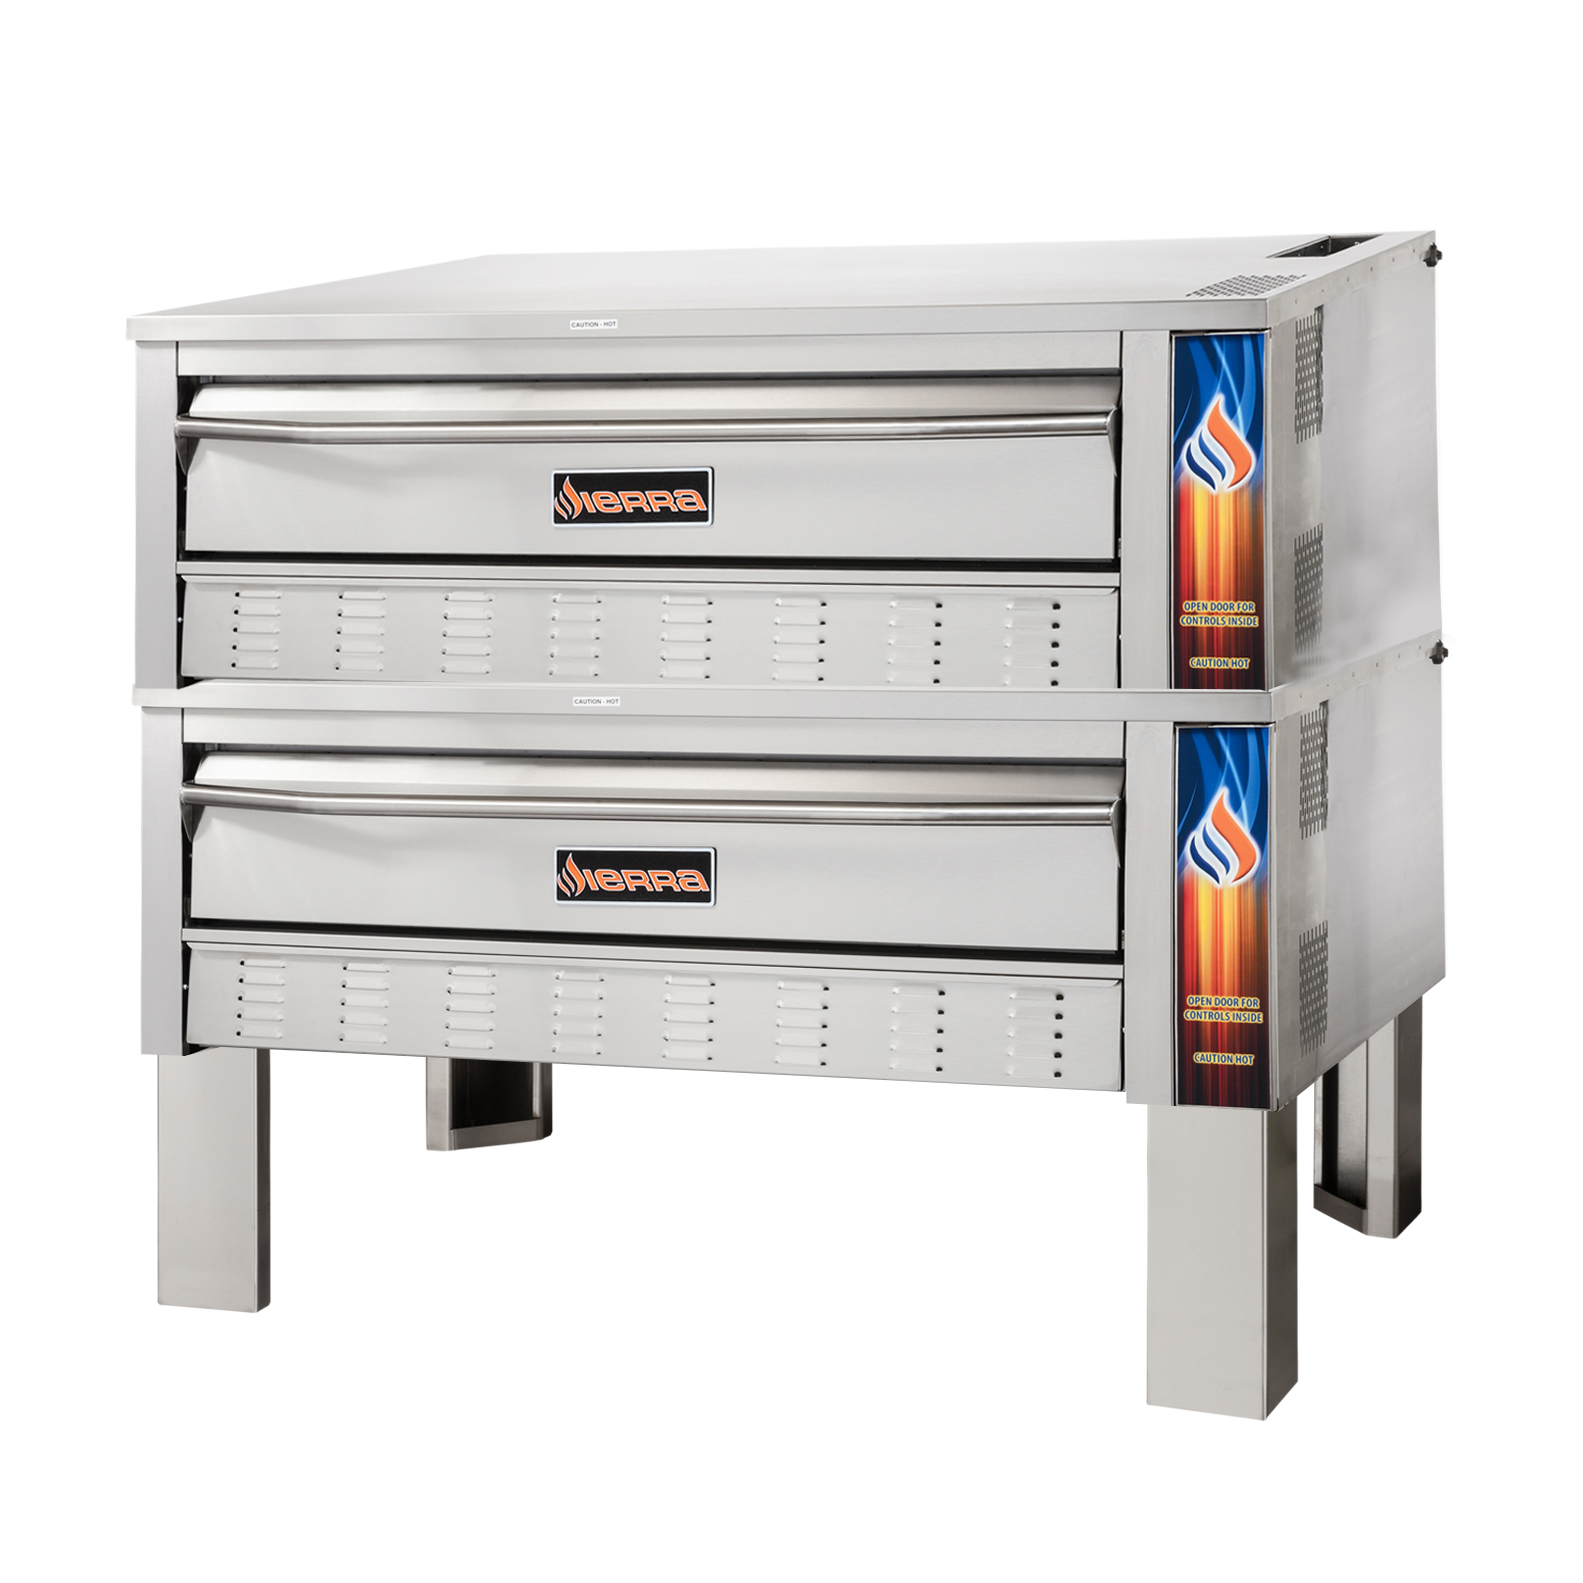 MVP SRPO-72G-2 pizza bake oven, deck-type, gas